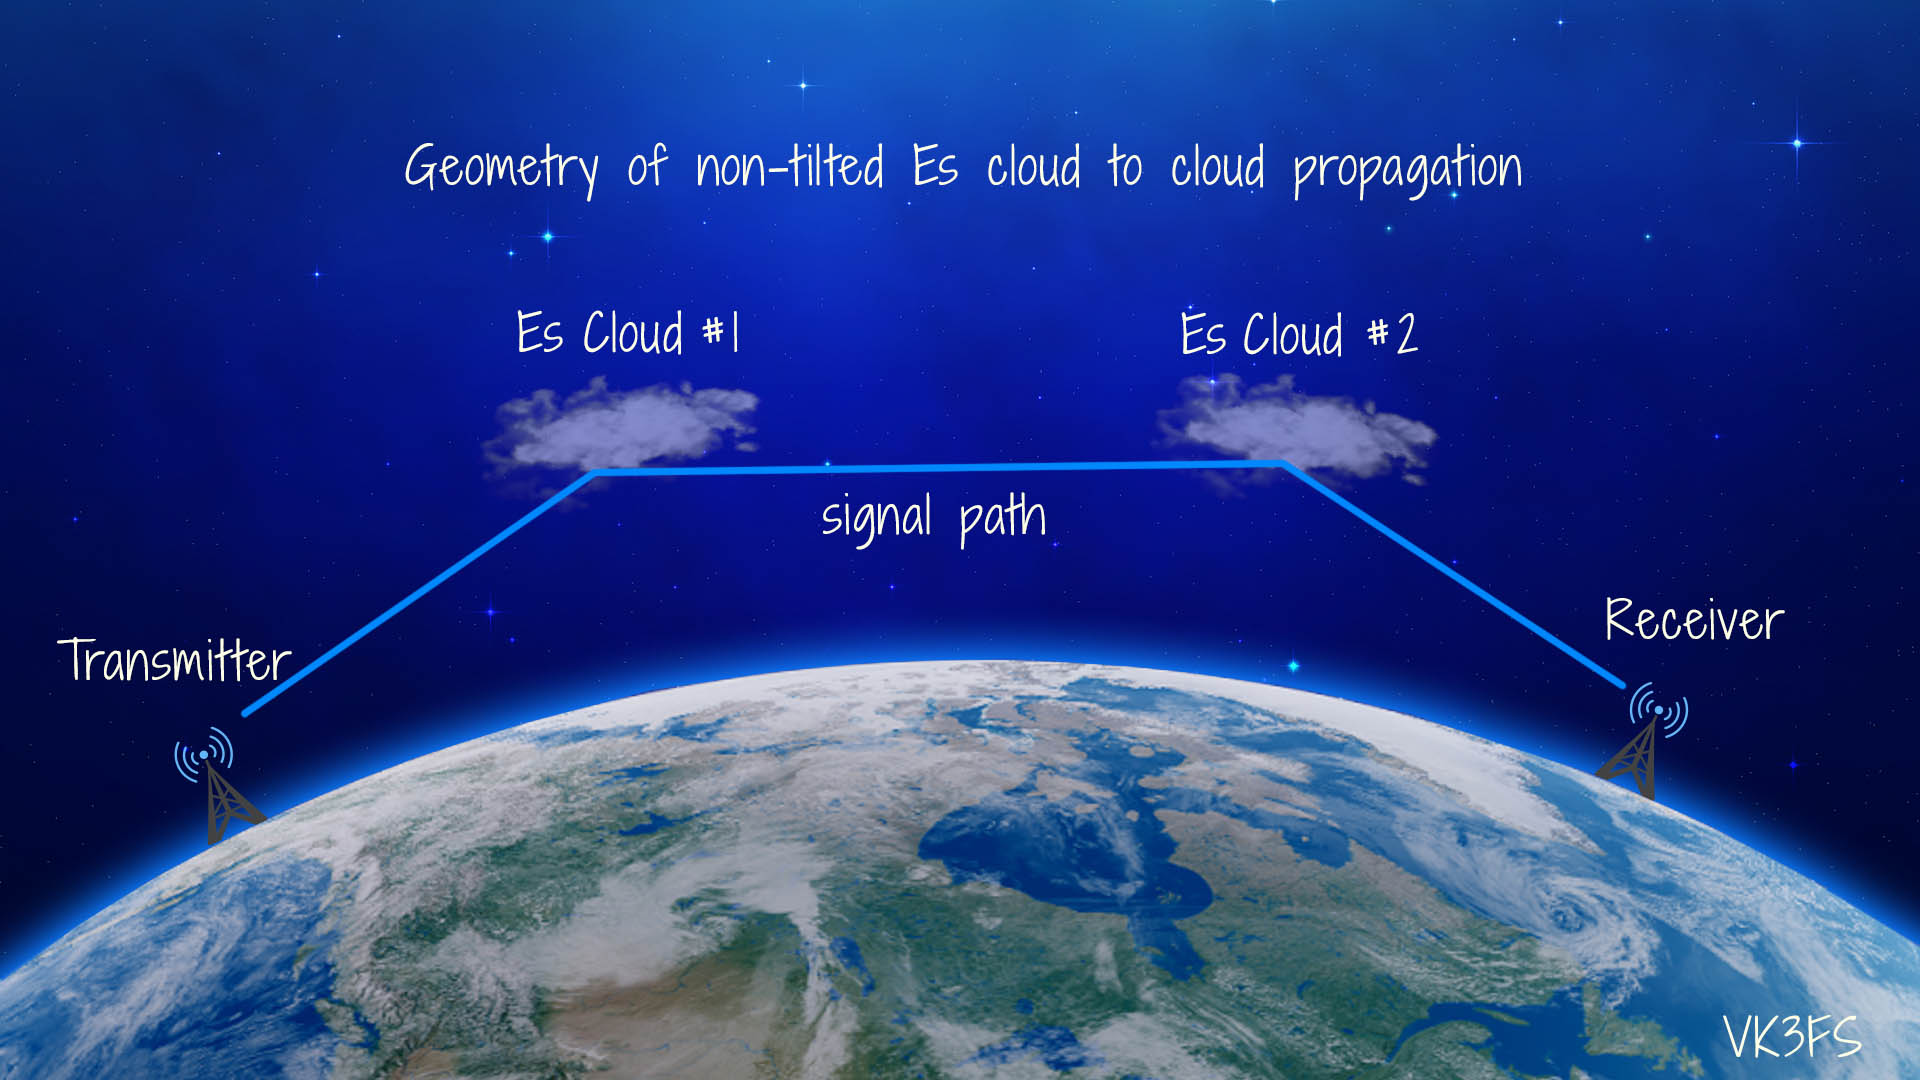 Geometry of non-tilted Es cloud to cloud propagation